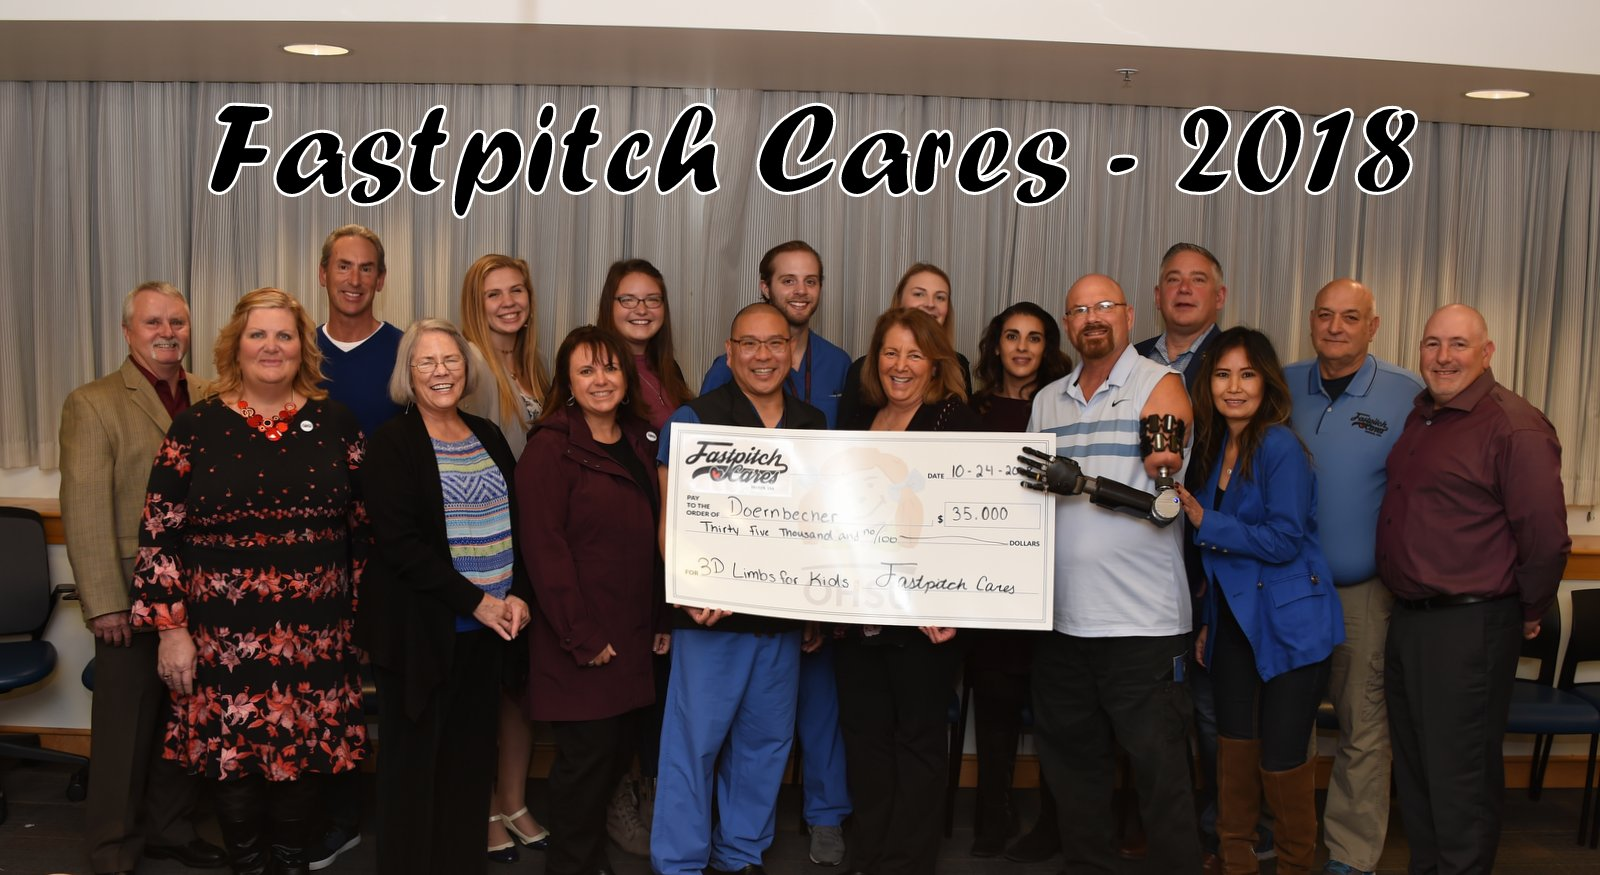 Fastpitch Cares Presents $35,000 Check to Doernbecher Childrens Hospital